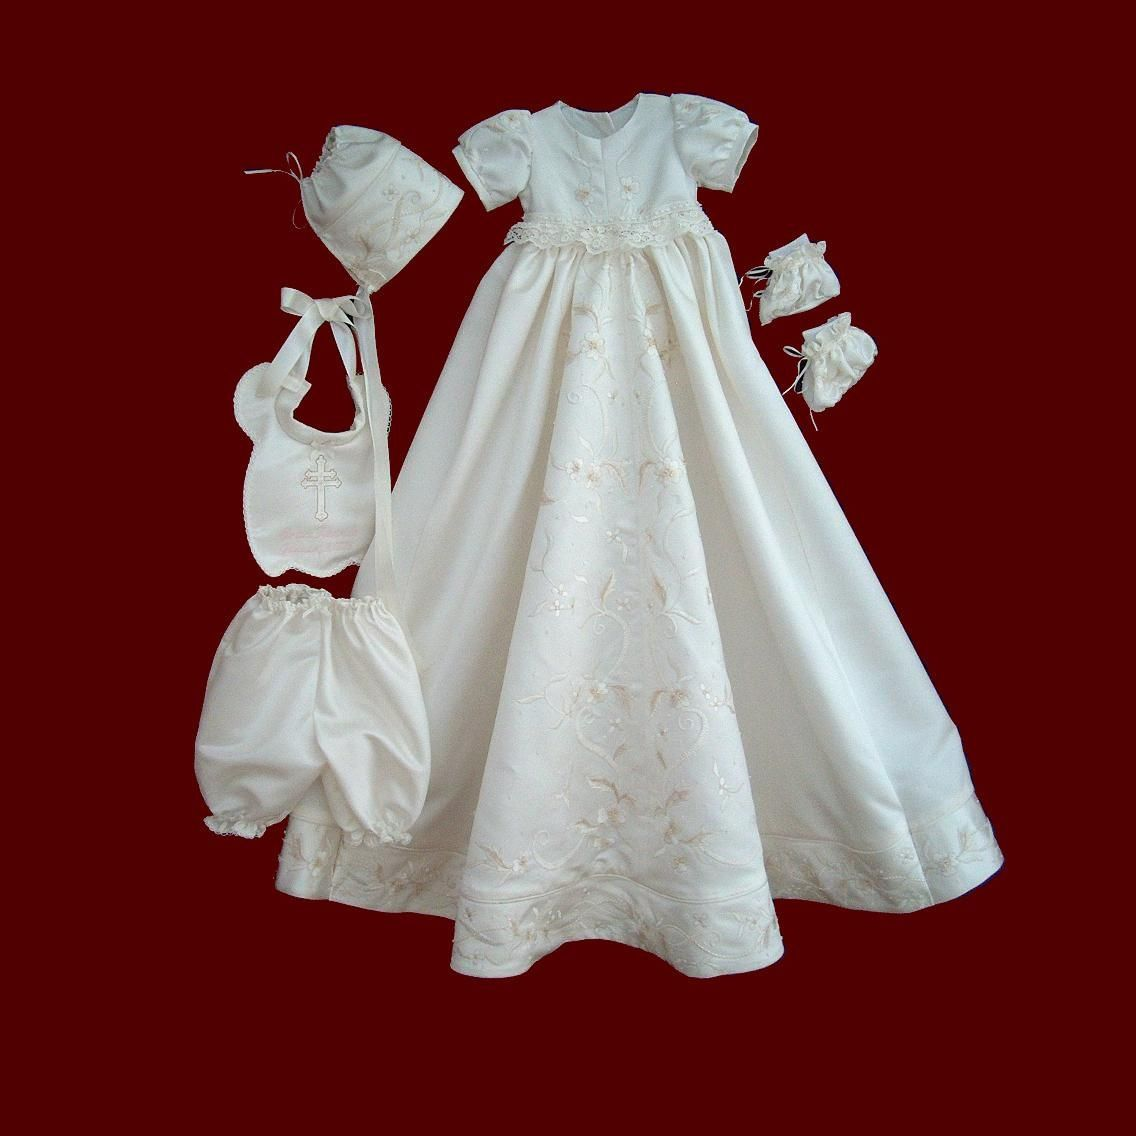 Best dress to wear to a baptism  Pin by jooana on wedding ideas for you  Pinterest  Donate wedding